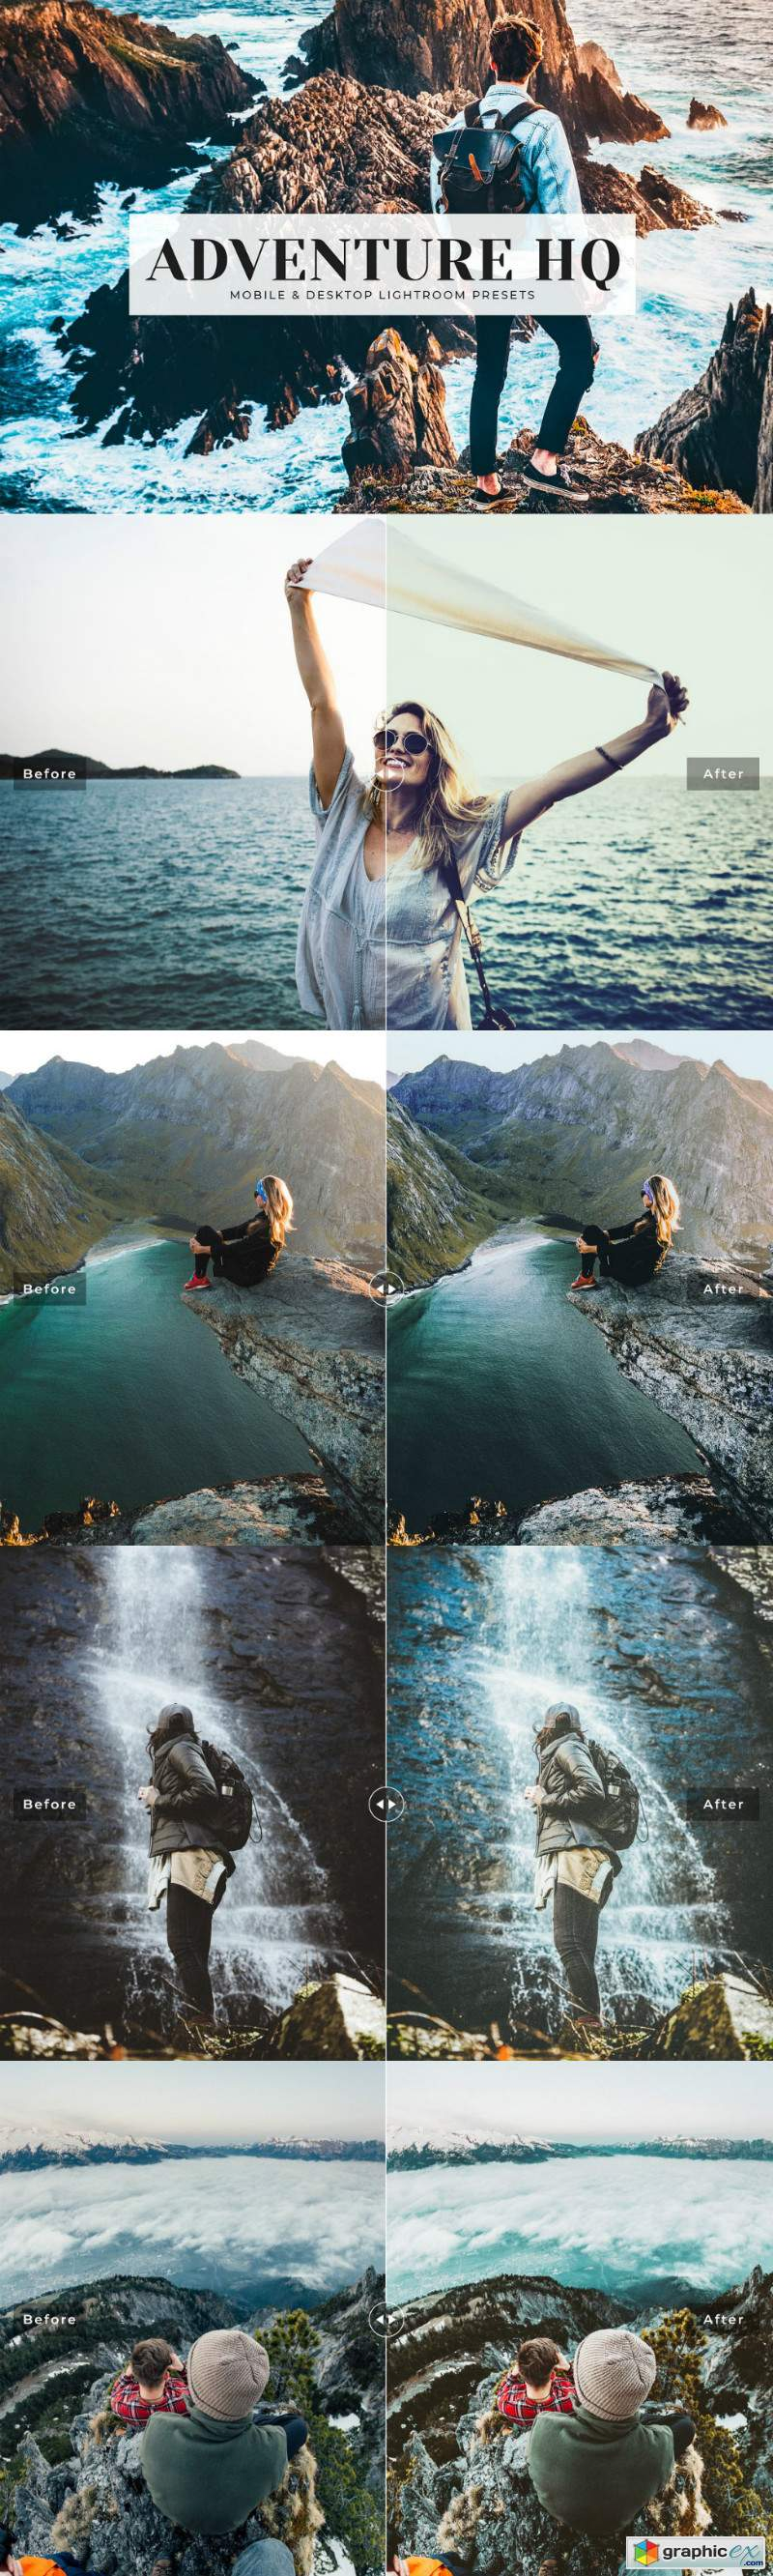 Adventure HQ Lightroom Presets Pack